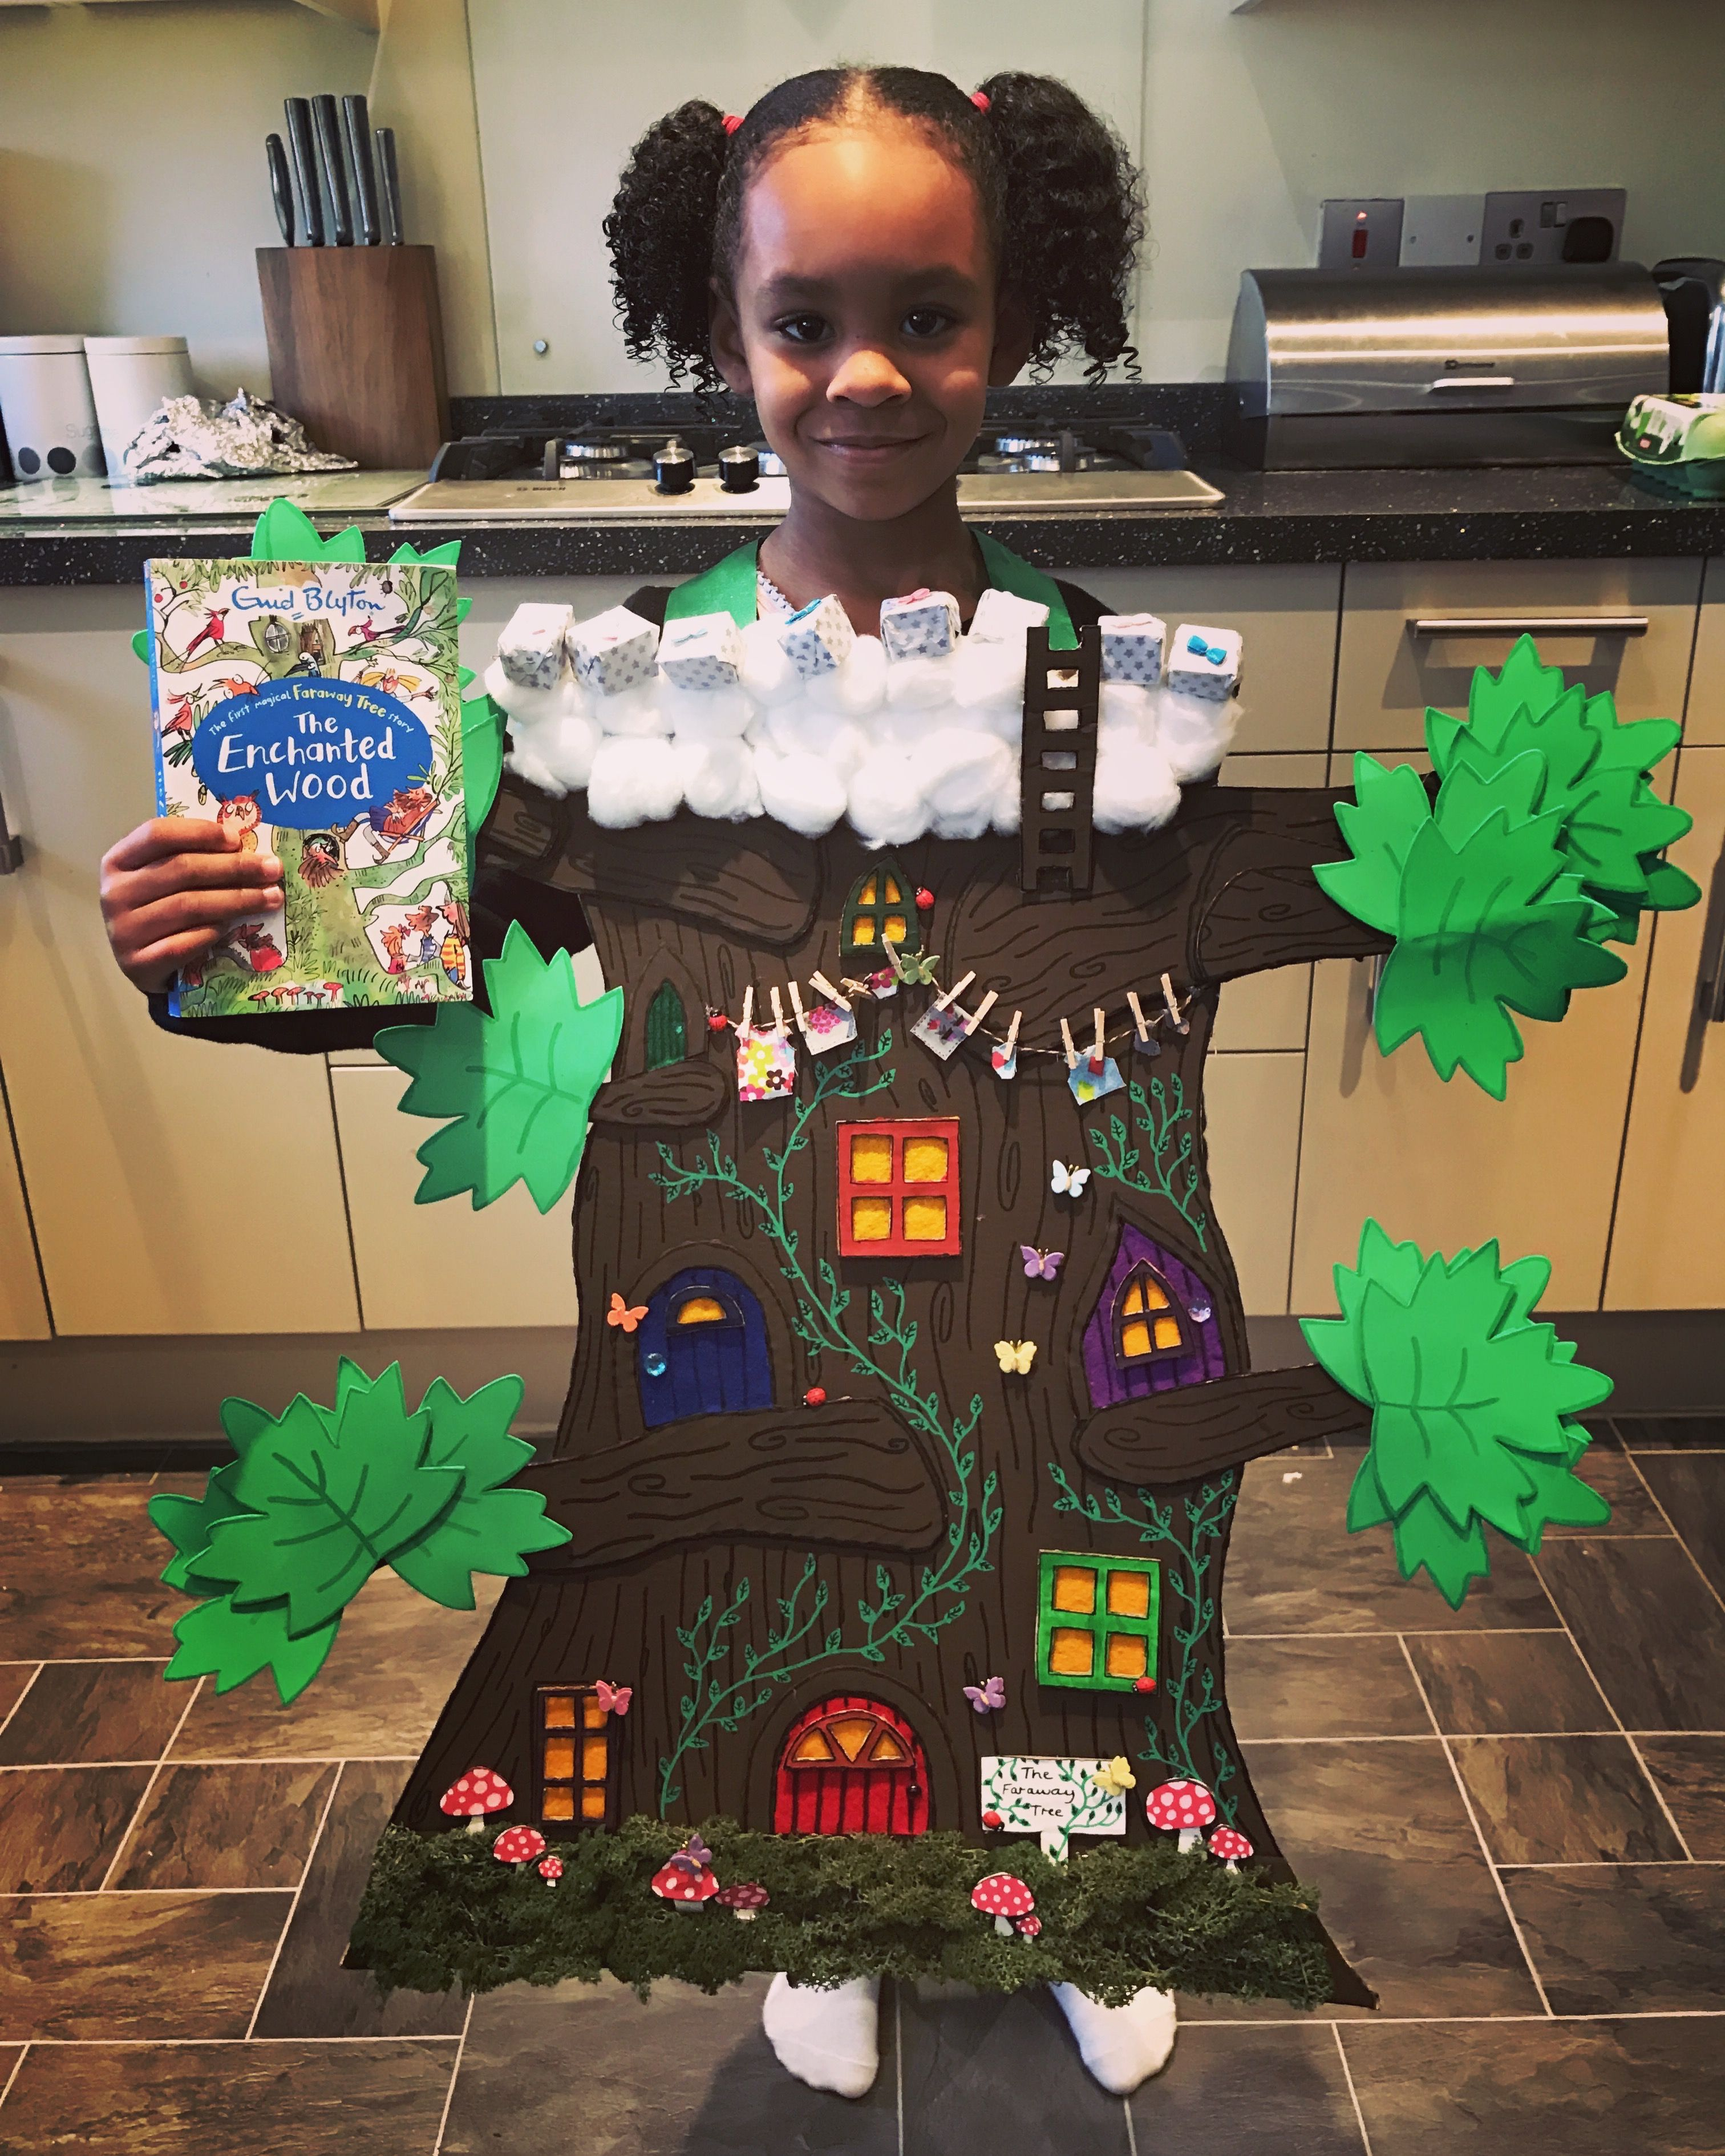 b79e64a253 Wearable DIY Faraway Tree costume for World Book Day 2017. Based on The  Enchanted Wood by Enid Blyton.